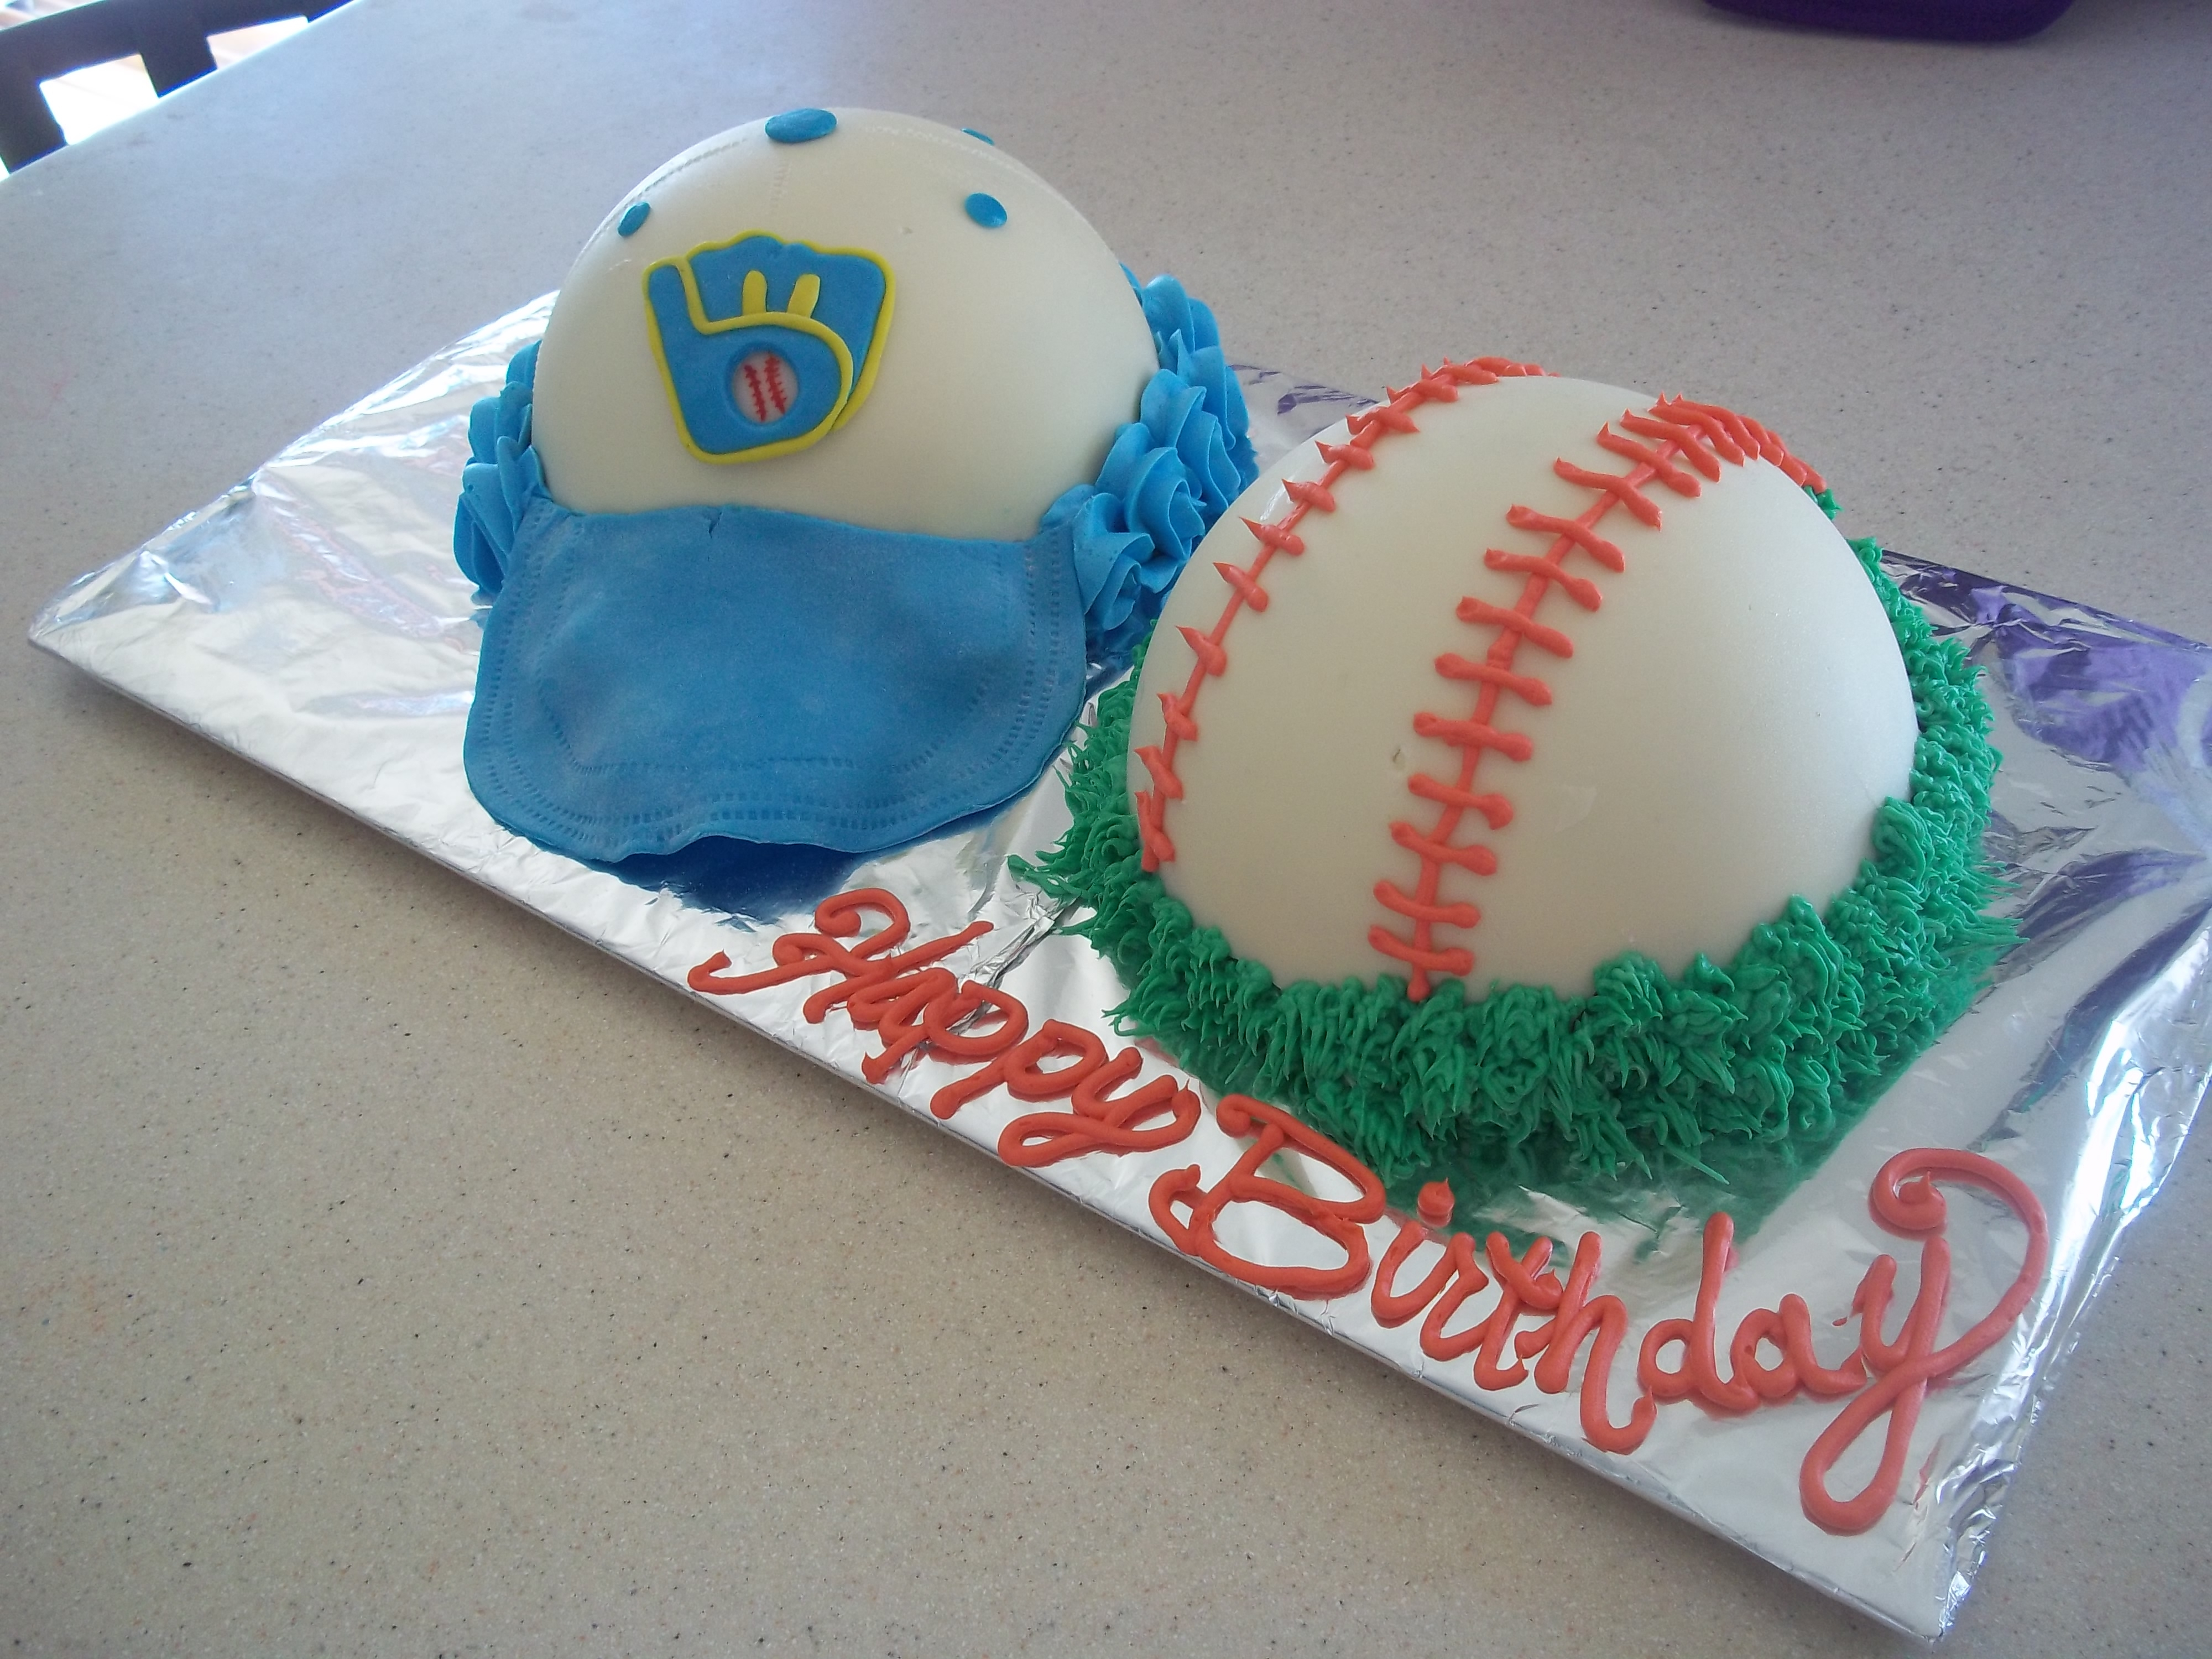 Milwaukee Brewers red velvet 6' sphere cake. The cake is filled with cream cheese frosting covered in white chocolate, with fondant logo and rim of hat, grass and lines of the baseball are piped.